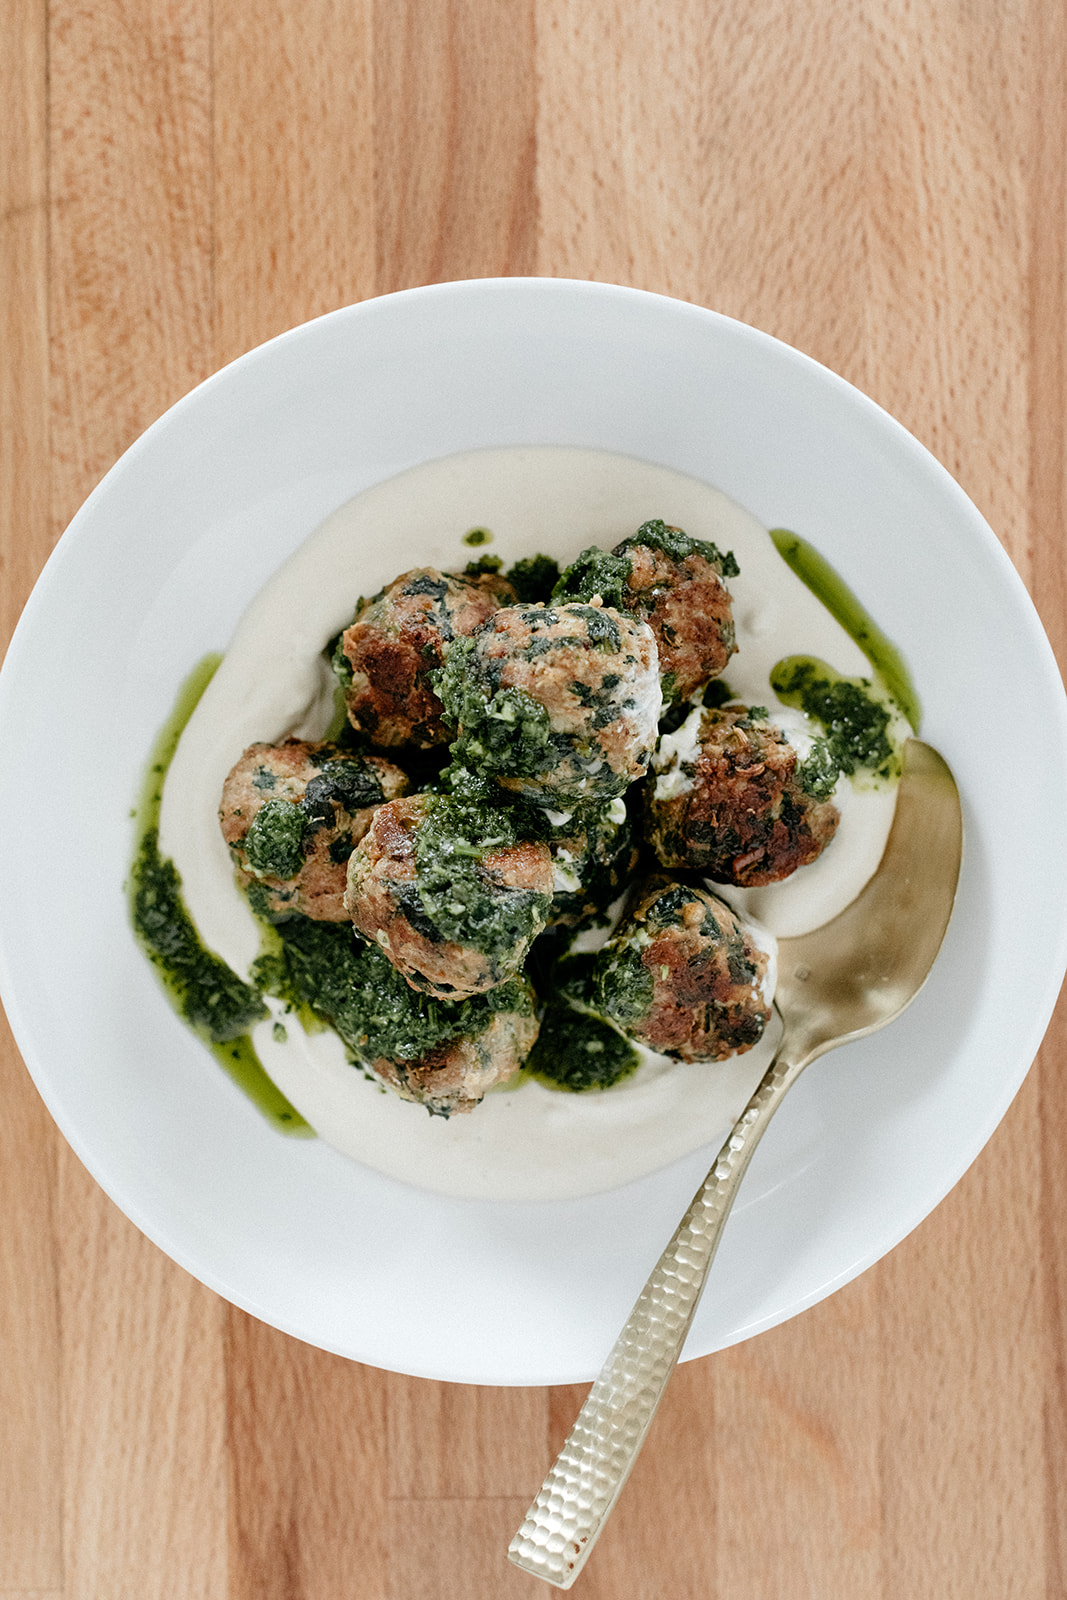 1-31-19-molly-yeh-turkey-sausage-meatballs-1.jpg